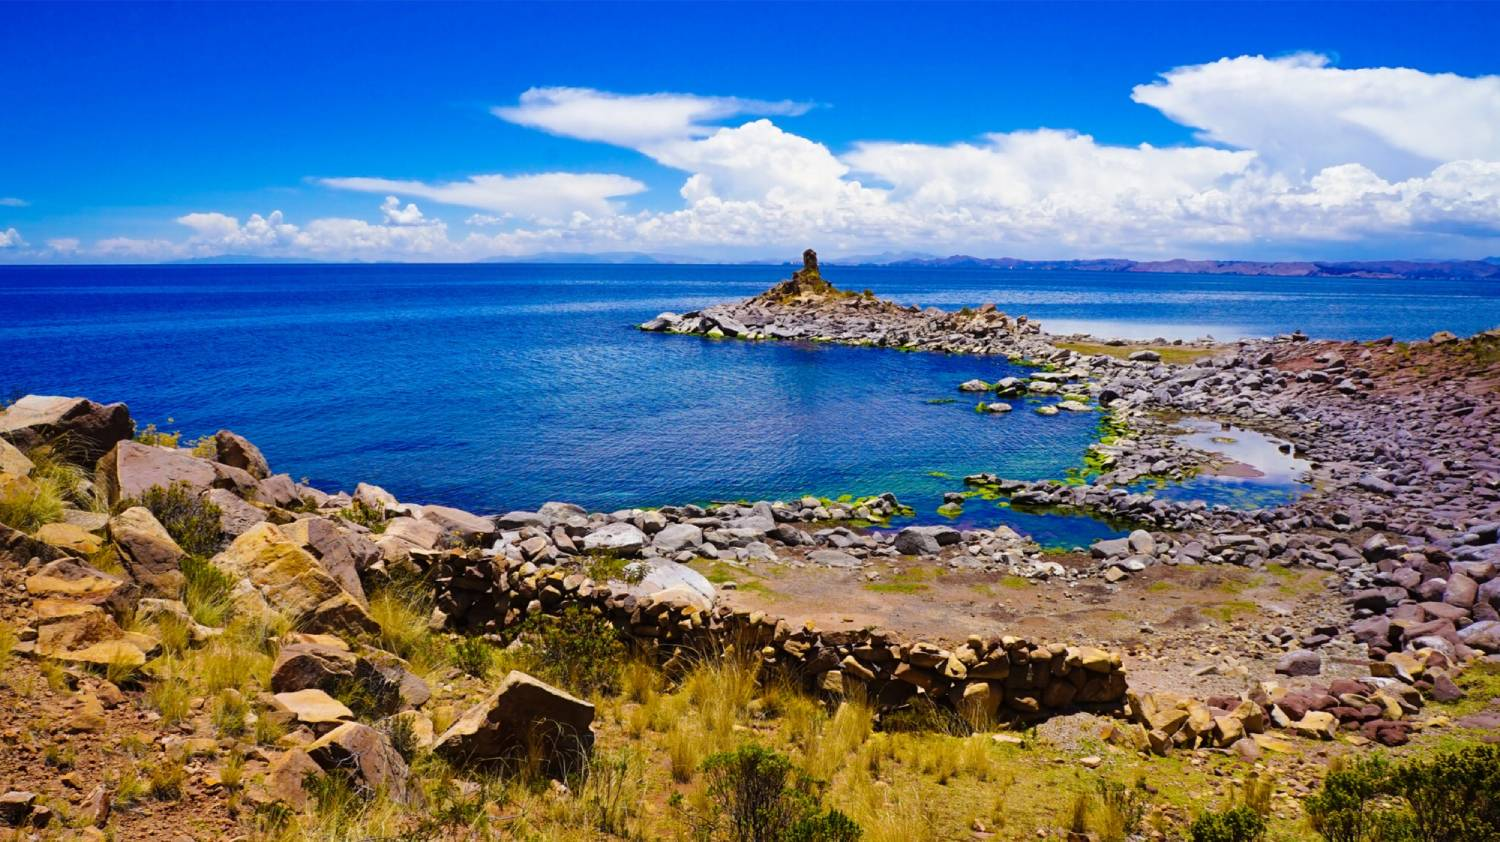 Taquile Island - The Best Places To Visit In Peru